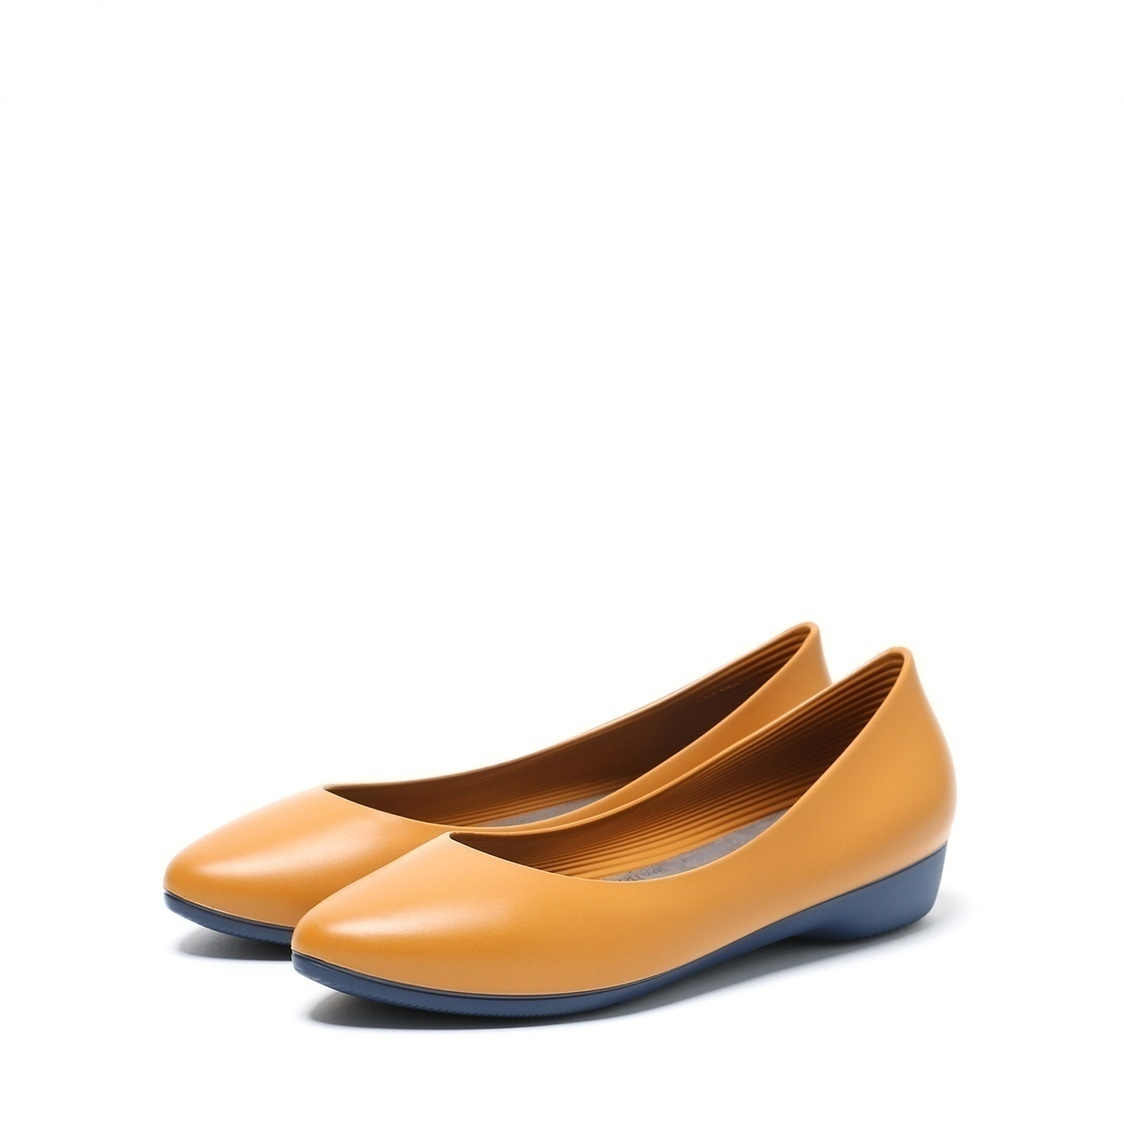 F3 Flat-Pointed Heel height 3cm Mustard Yellow